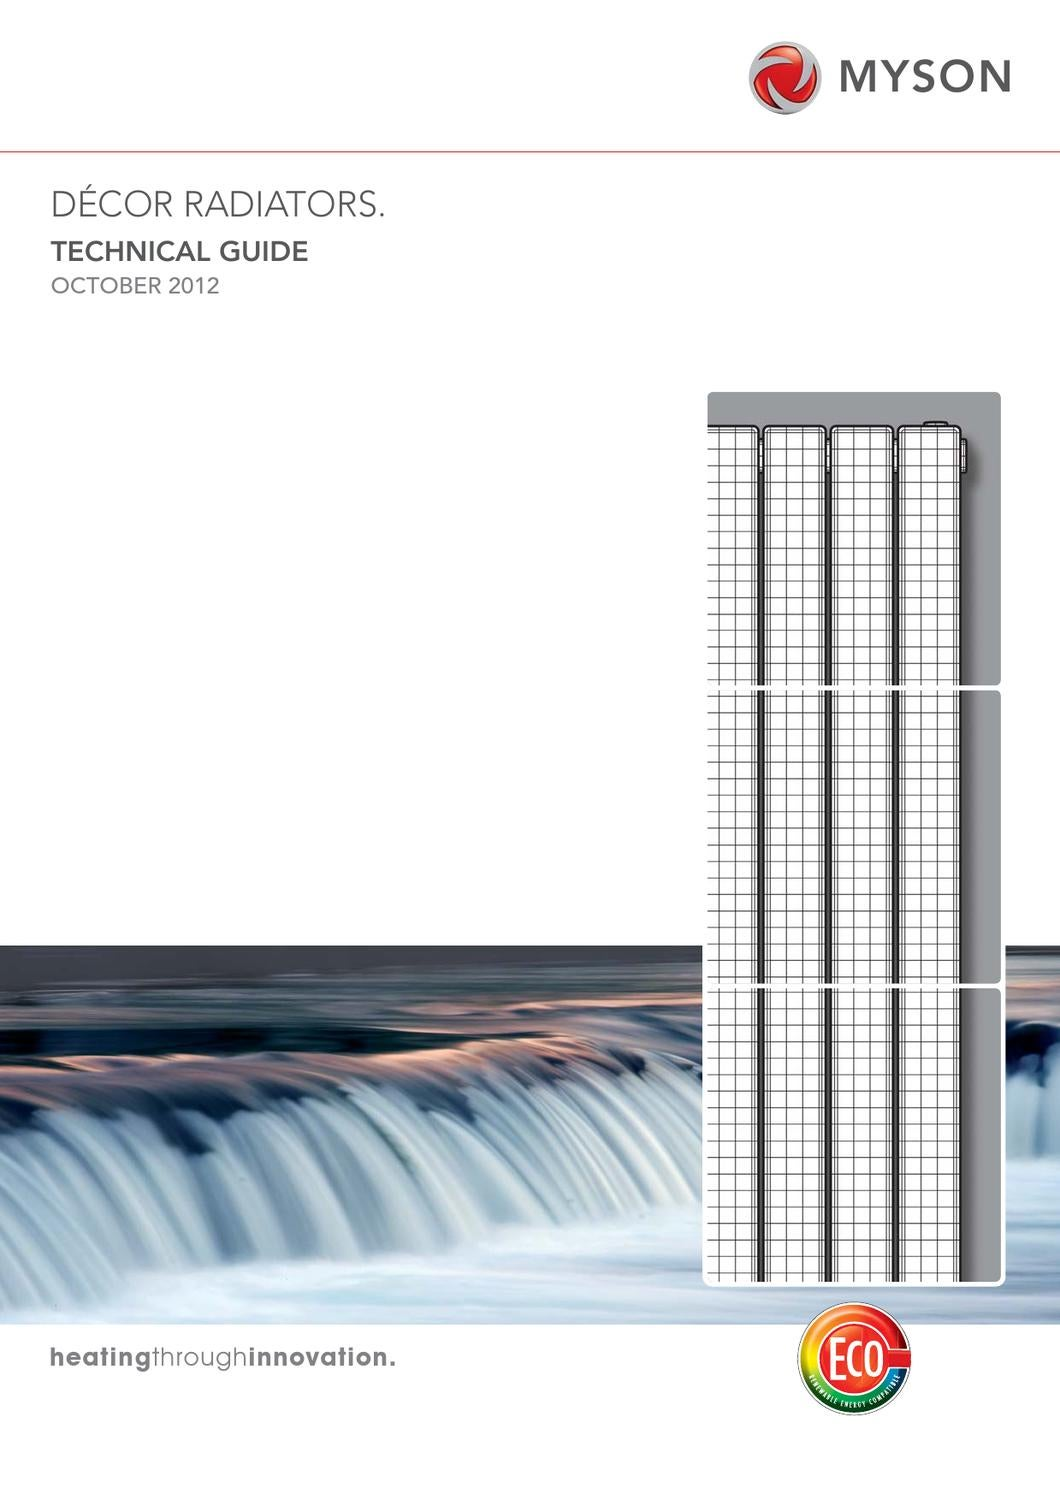 Myson decor radiators technical guide by myson issuu for Myson decor